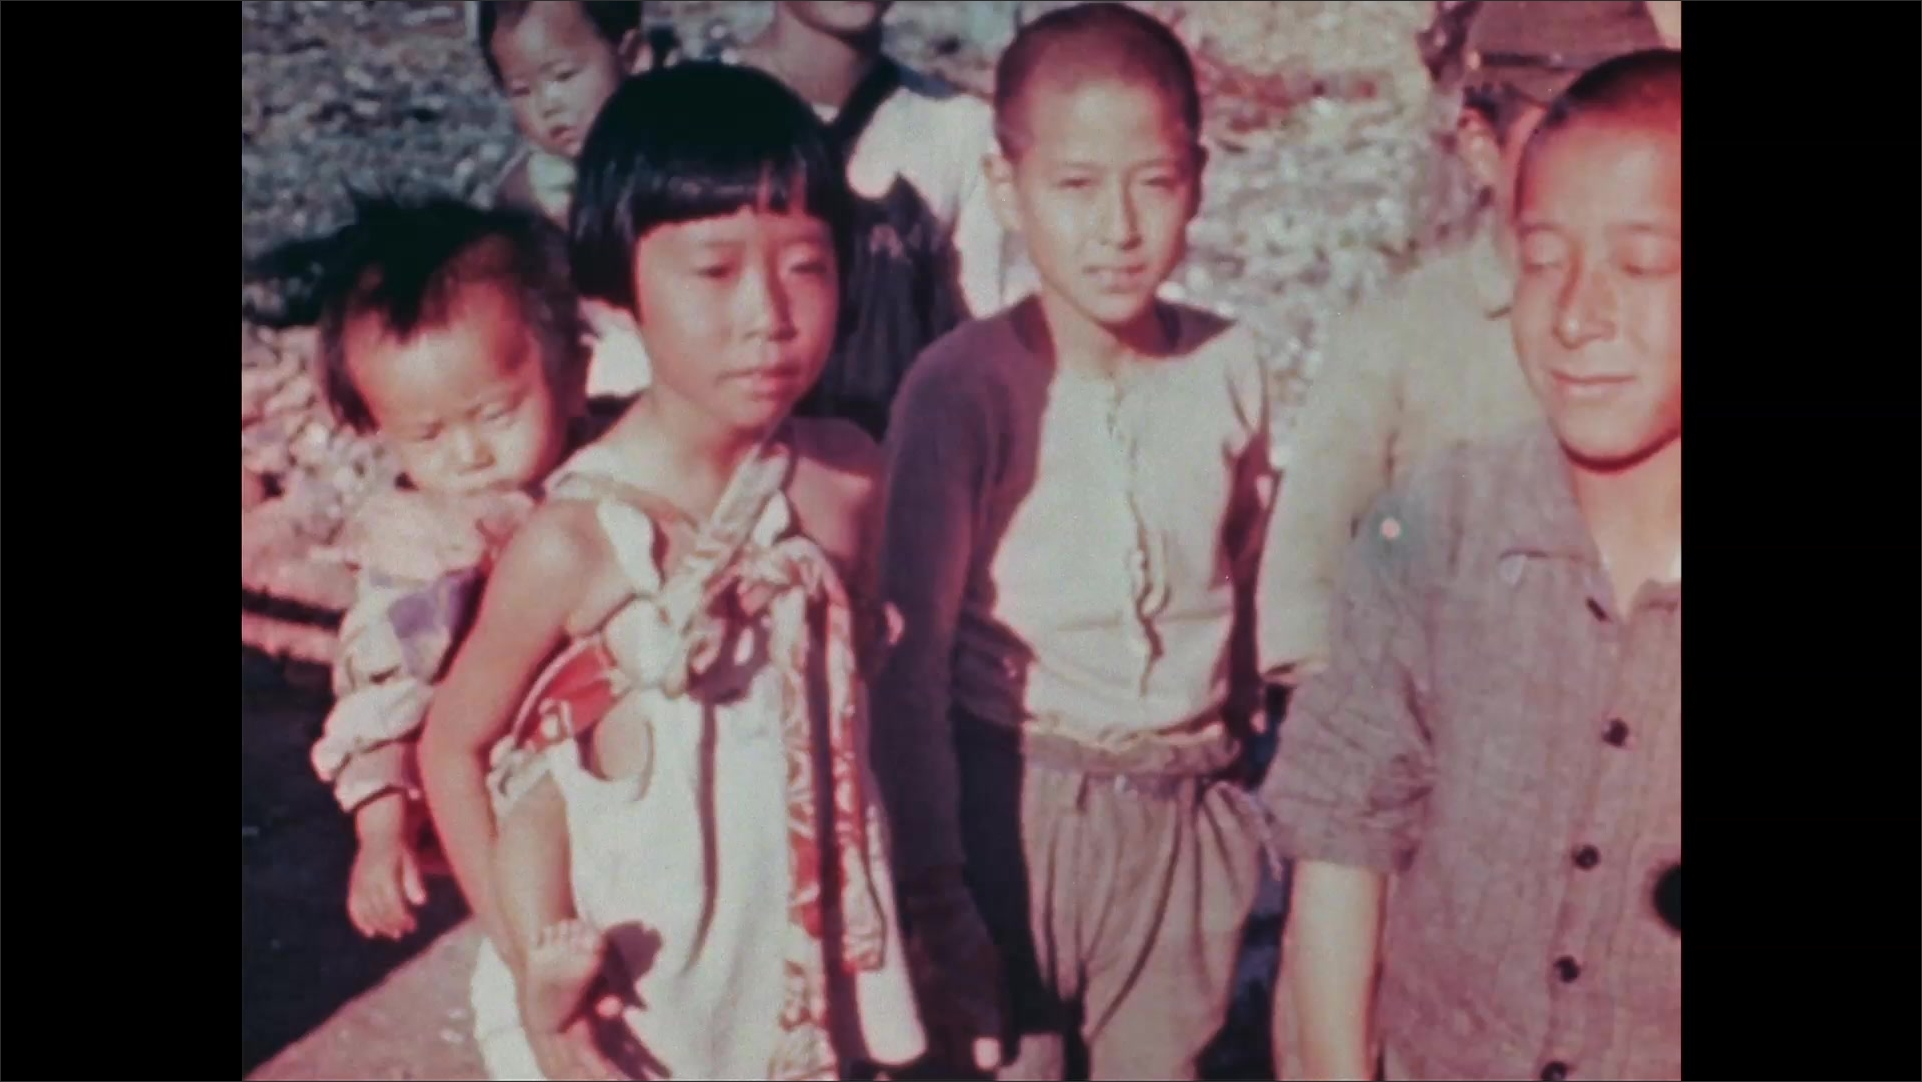 1940s Nagasaki: Rubble, children. Woman, girl wear babies strapped to backs in cloth sling. Woman holds out hand, receives object, smiles, laughs, raises hand, looks skeptical, turns, leaves.